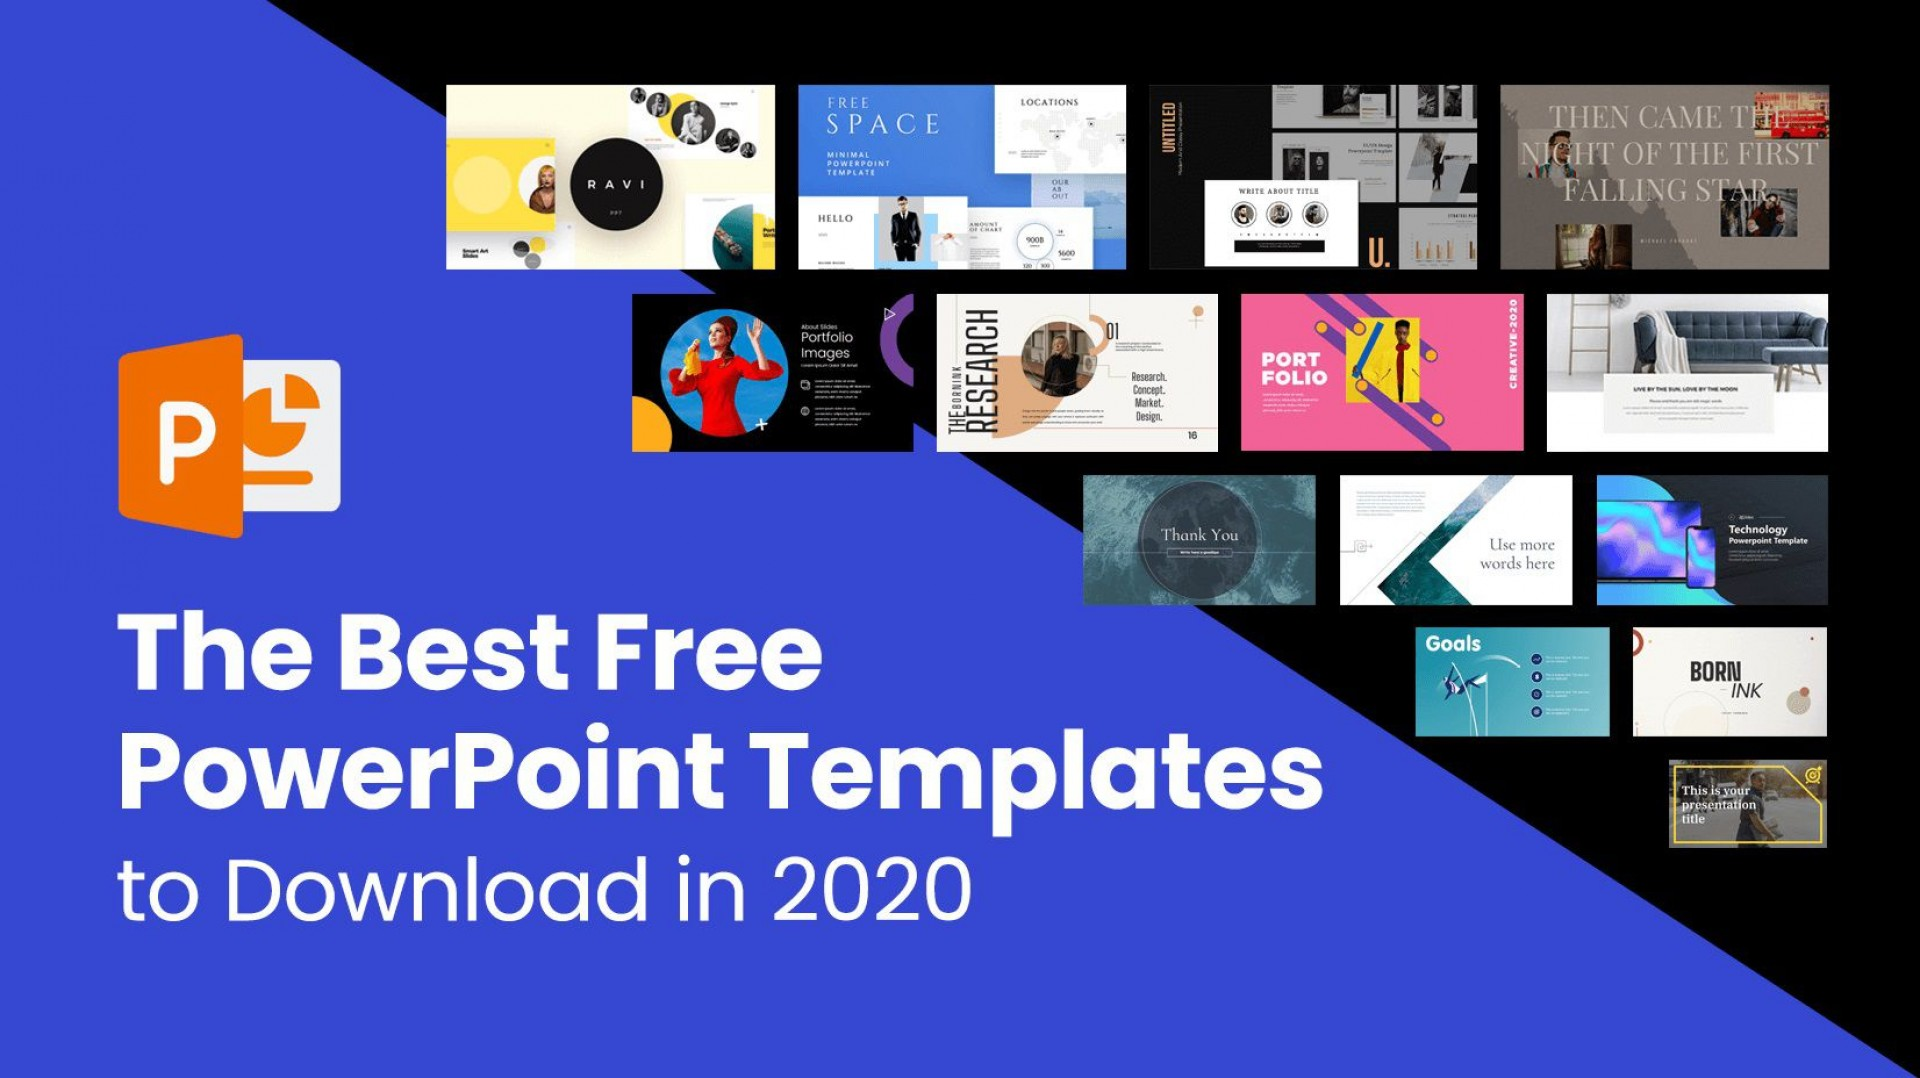 007 Amazing Best Ppt Template Free Download Inspiration  2019 Microsoft Powerpoint1920